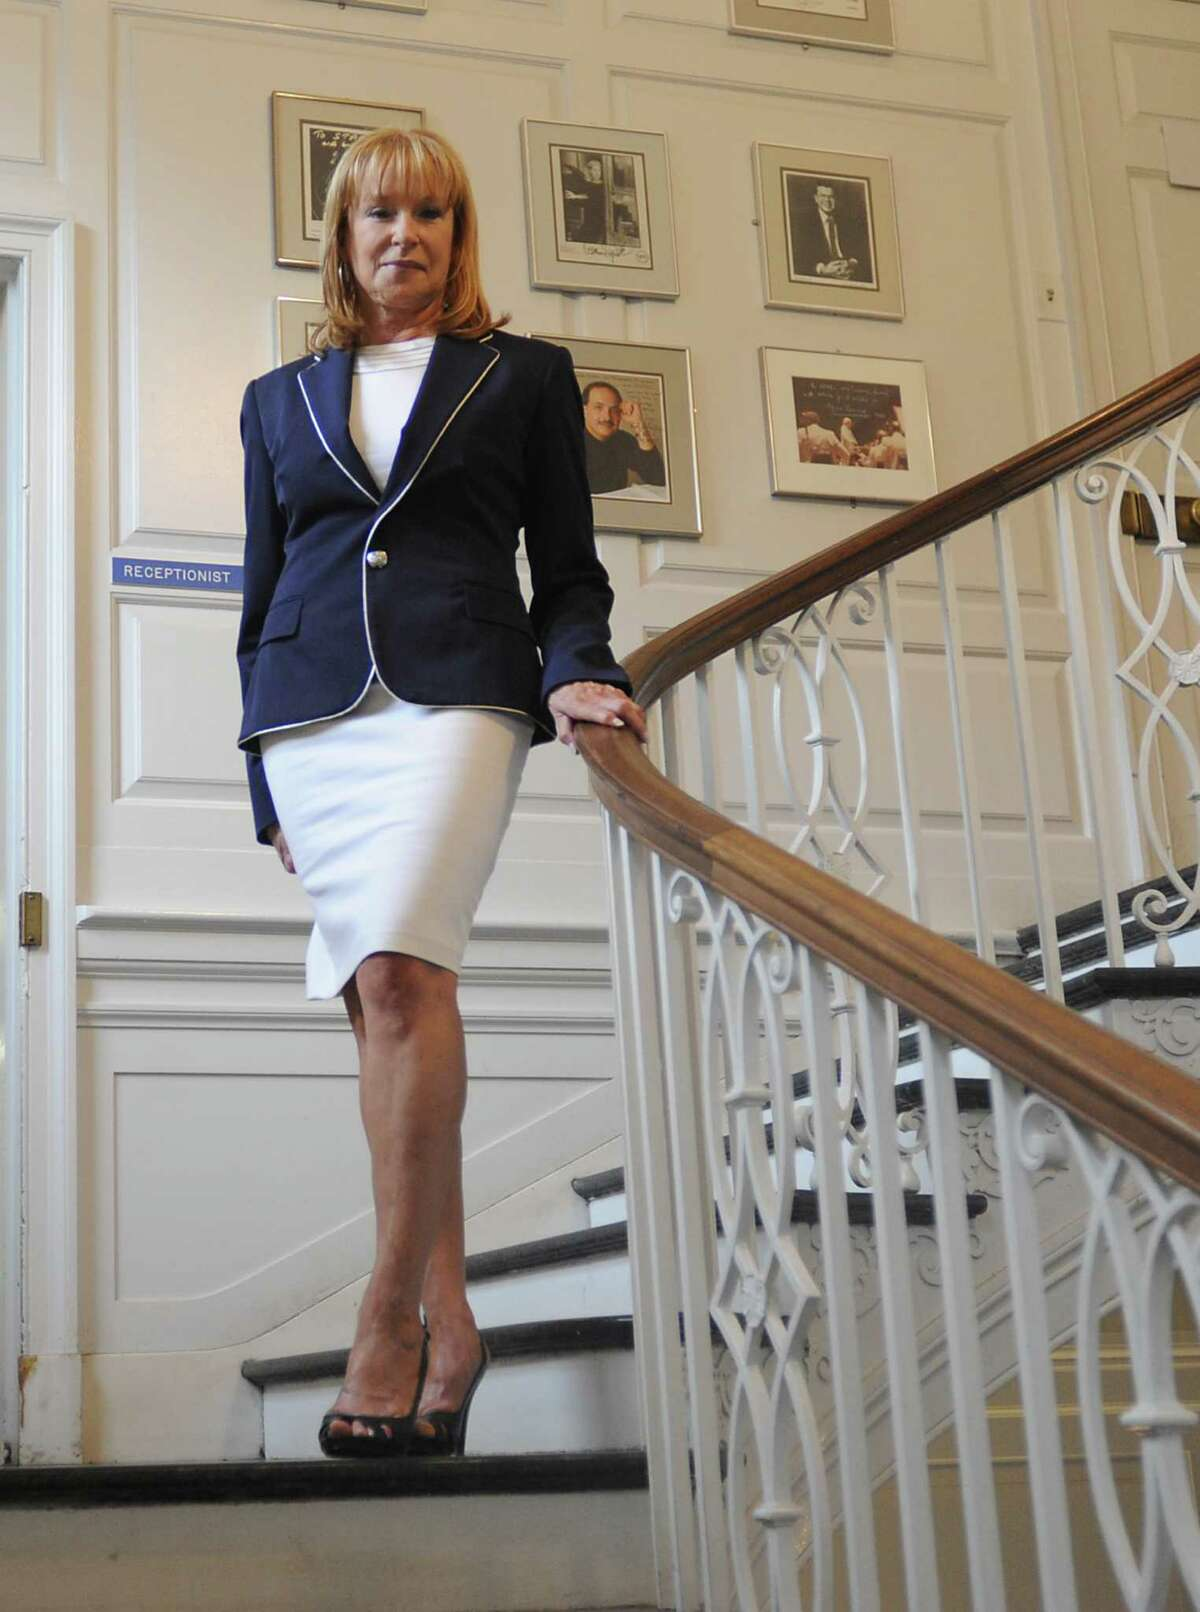 Marcia White, president and executive director of the Saratoga Performing Arts Center, stands on a staircase leading to her office on Monday, July 28, 2014 in Saratoga Springs, N.Y. This is White's 10th summer at SPAC. (Lori Van Buren / Times Union)